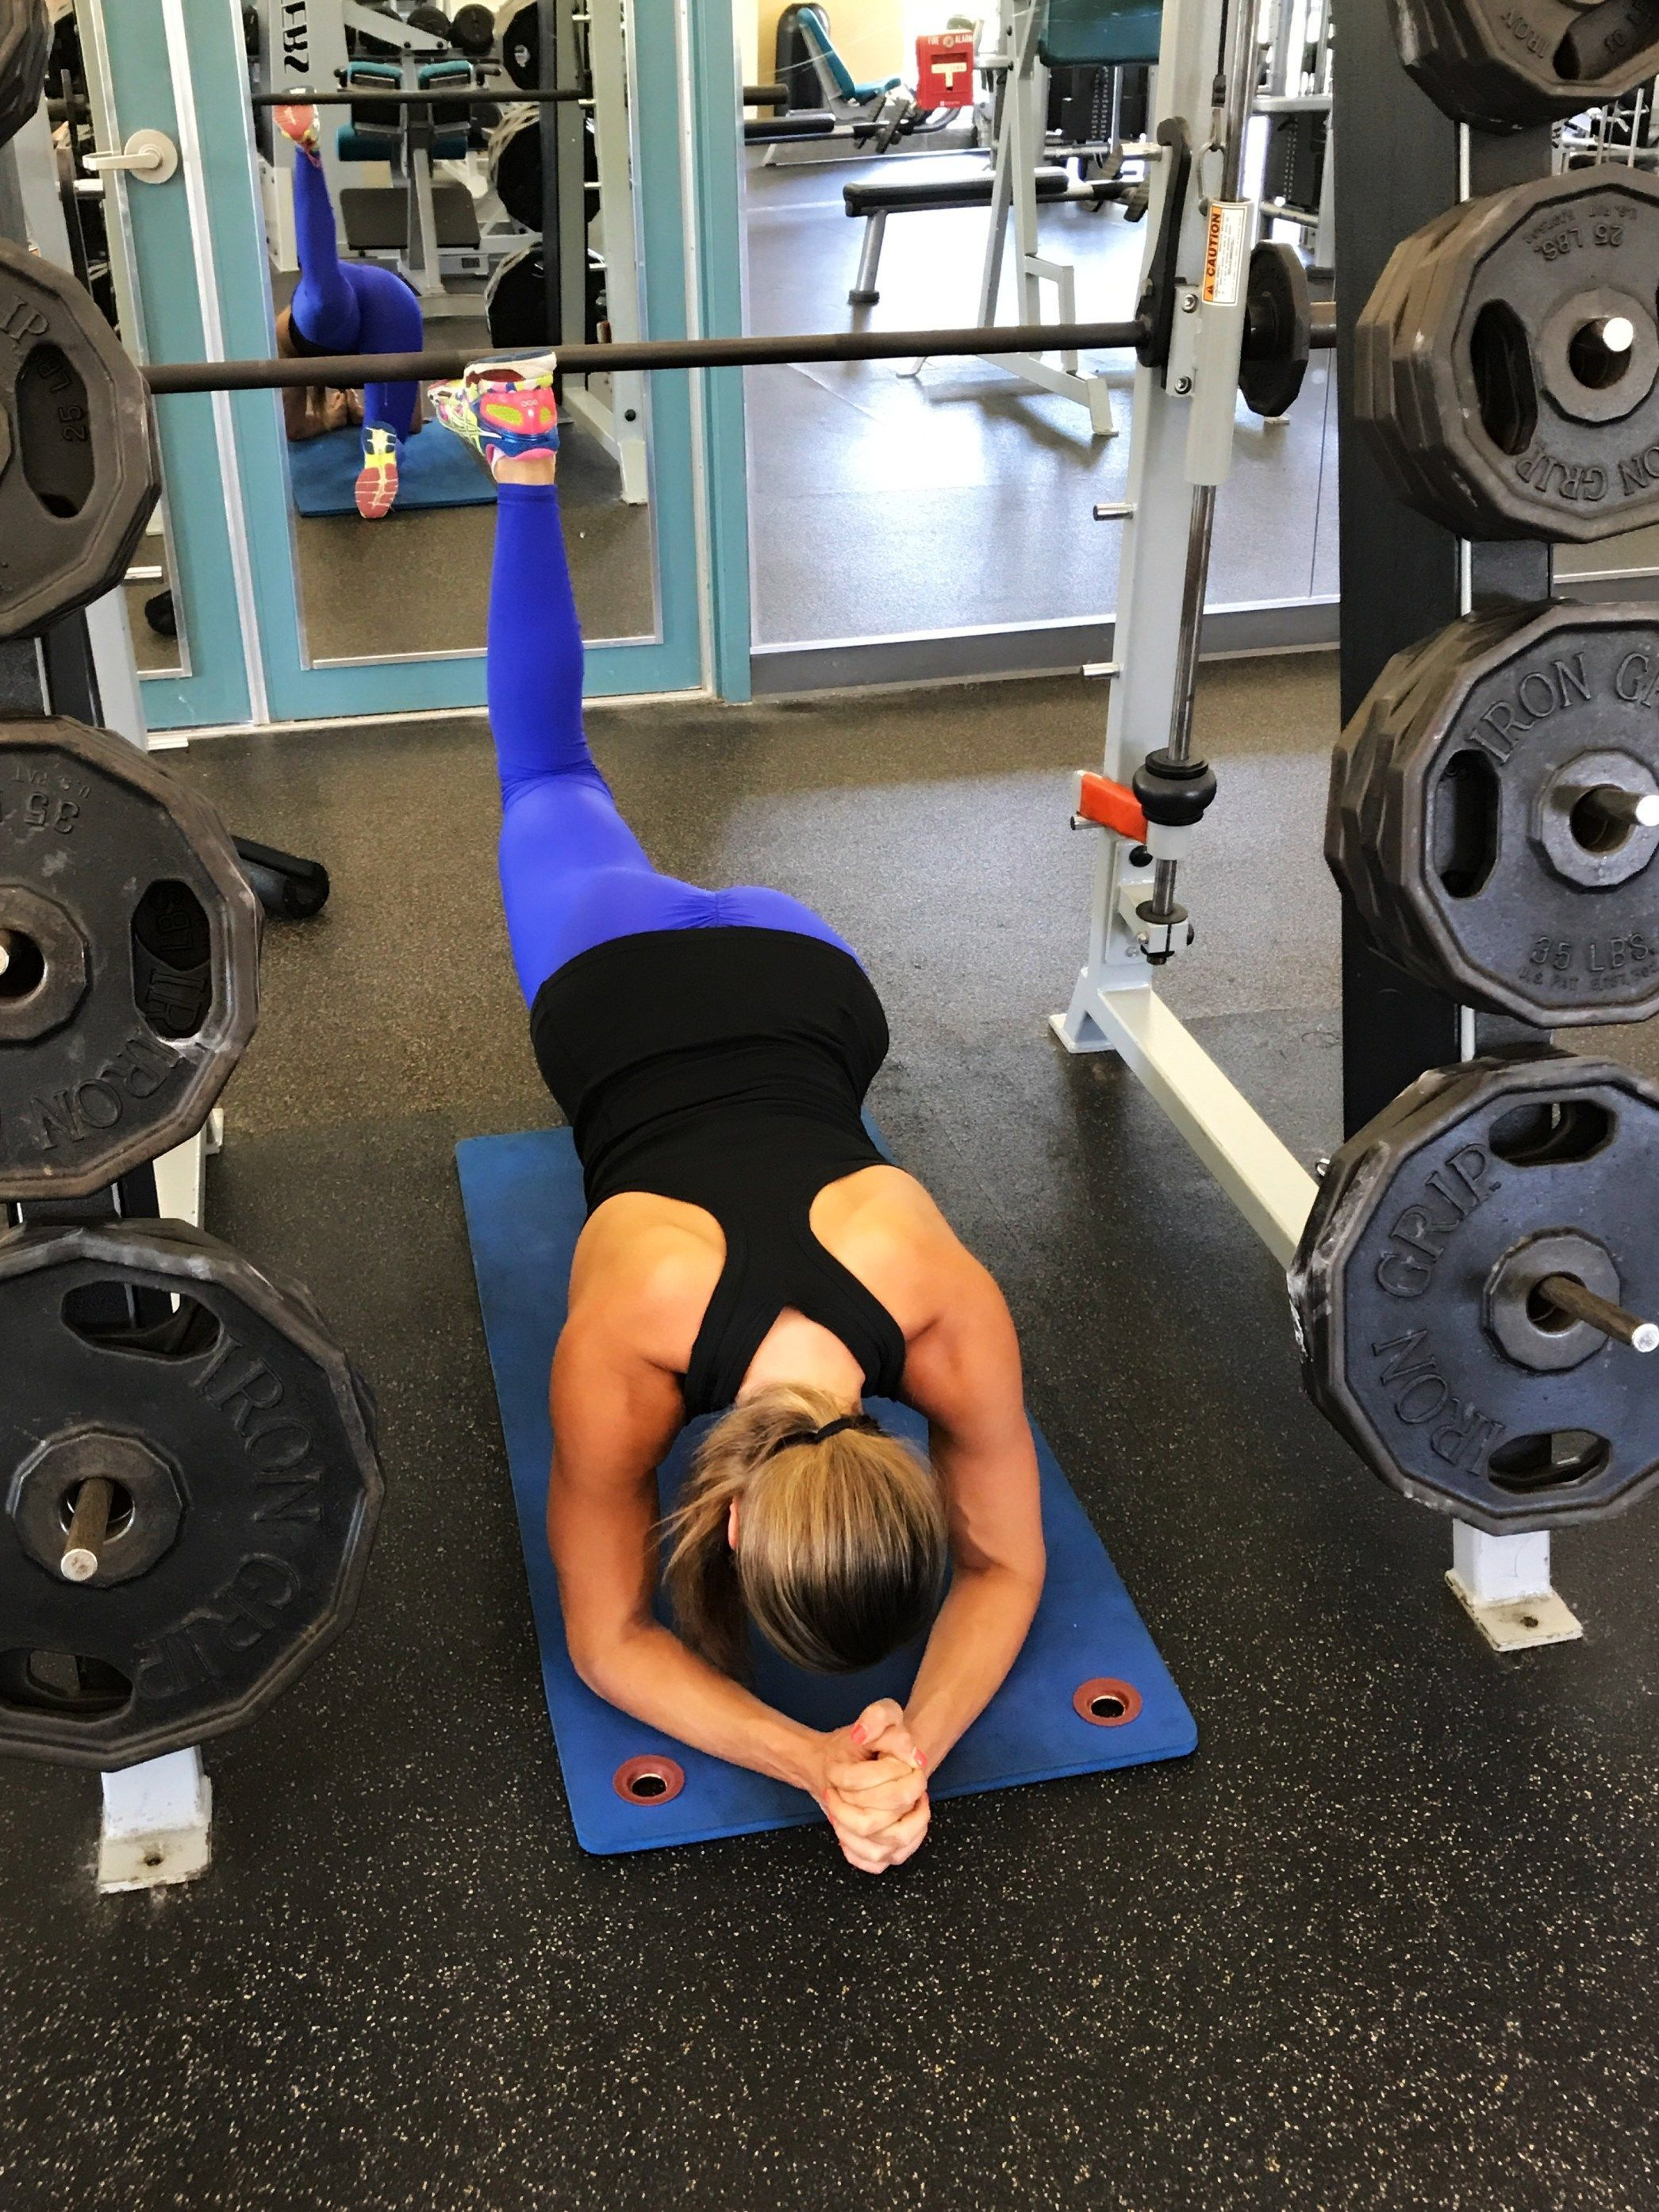 Tag A Friend Absolutely One Of The Best Glute Isolation Exercises Legs Workout Killer Circuit Totally Dead Superset U Can Do Be Sure To Add Weight And Bring Bar All Way Down Pus Gym Exerc